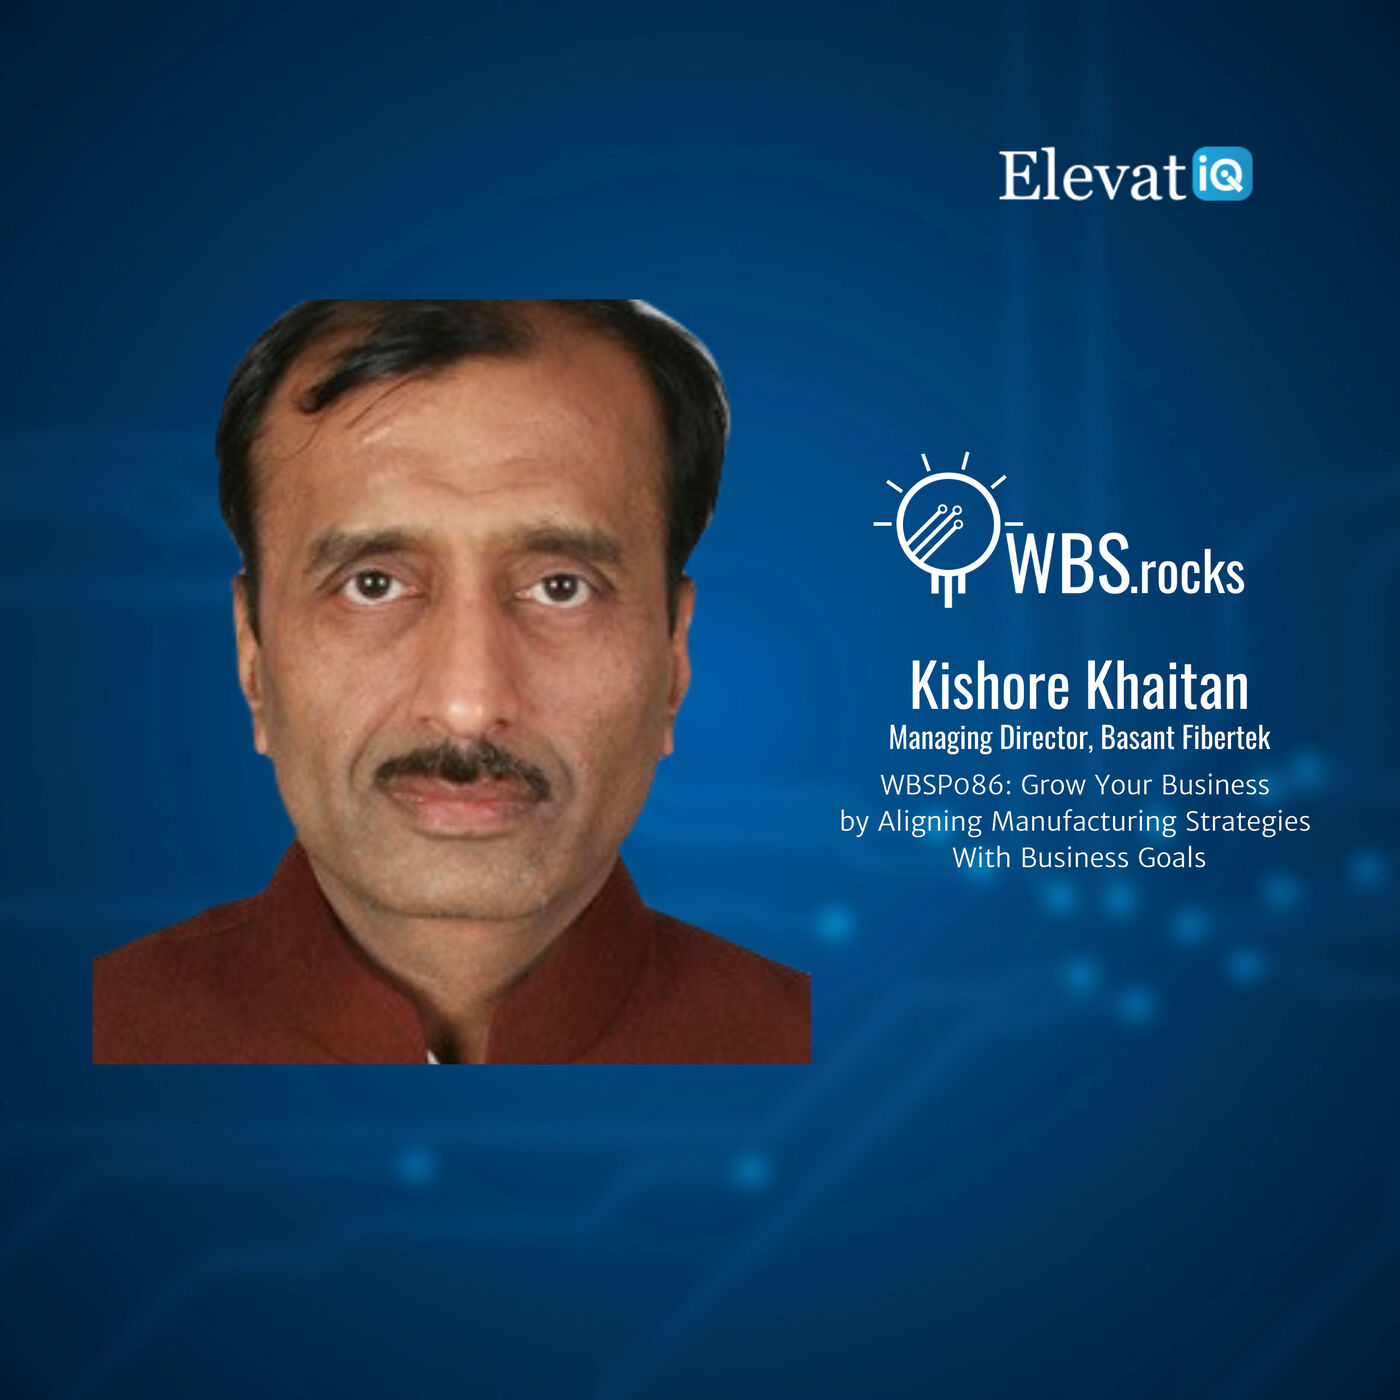 WBSP086: Grow Your Business by Aligning Manufacturing Strategies With Business Goals w/ Kishore Khaitan